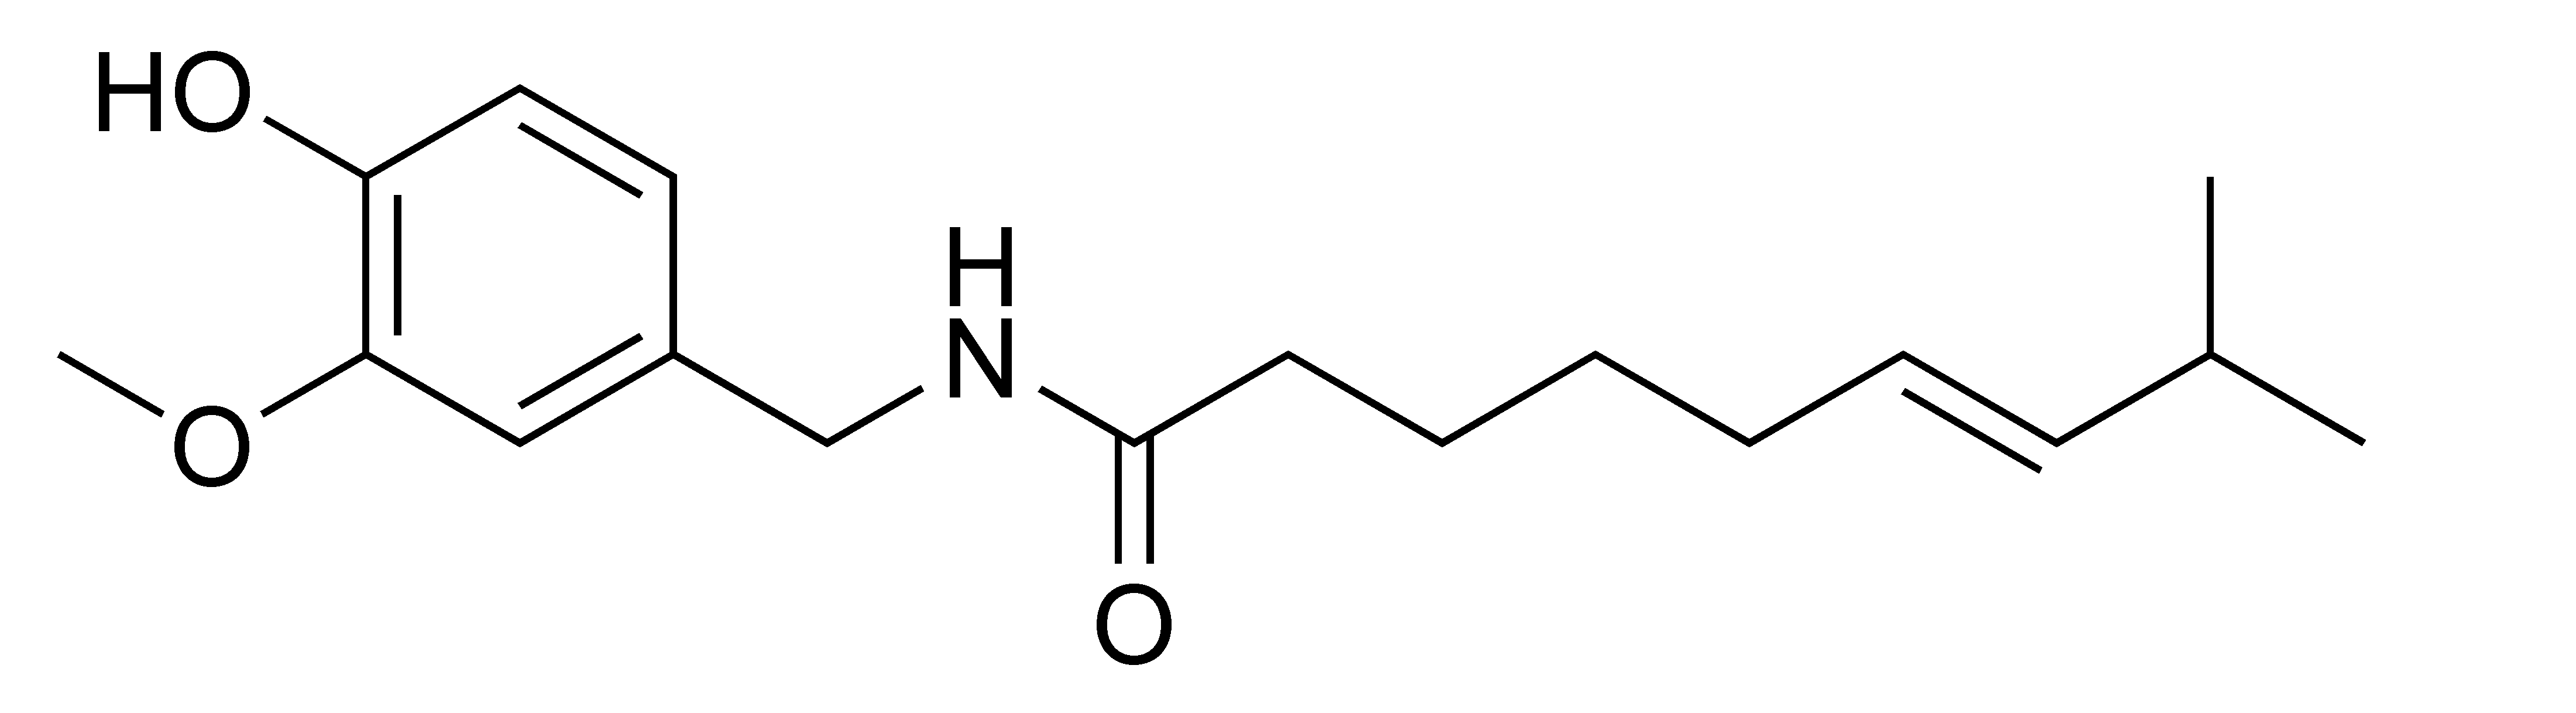 http://upload.wikimedia.org/wikipedia/commons/d/d8/Capsaicin_chemical_structure.